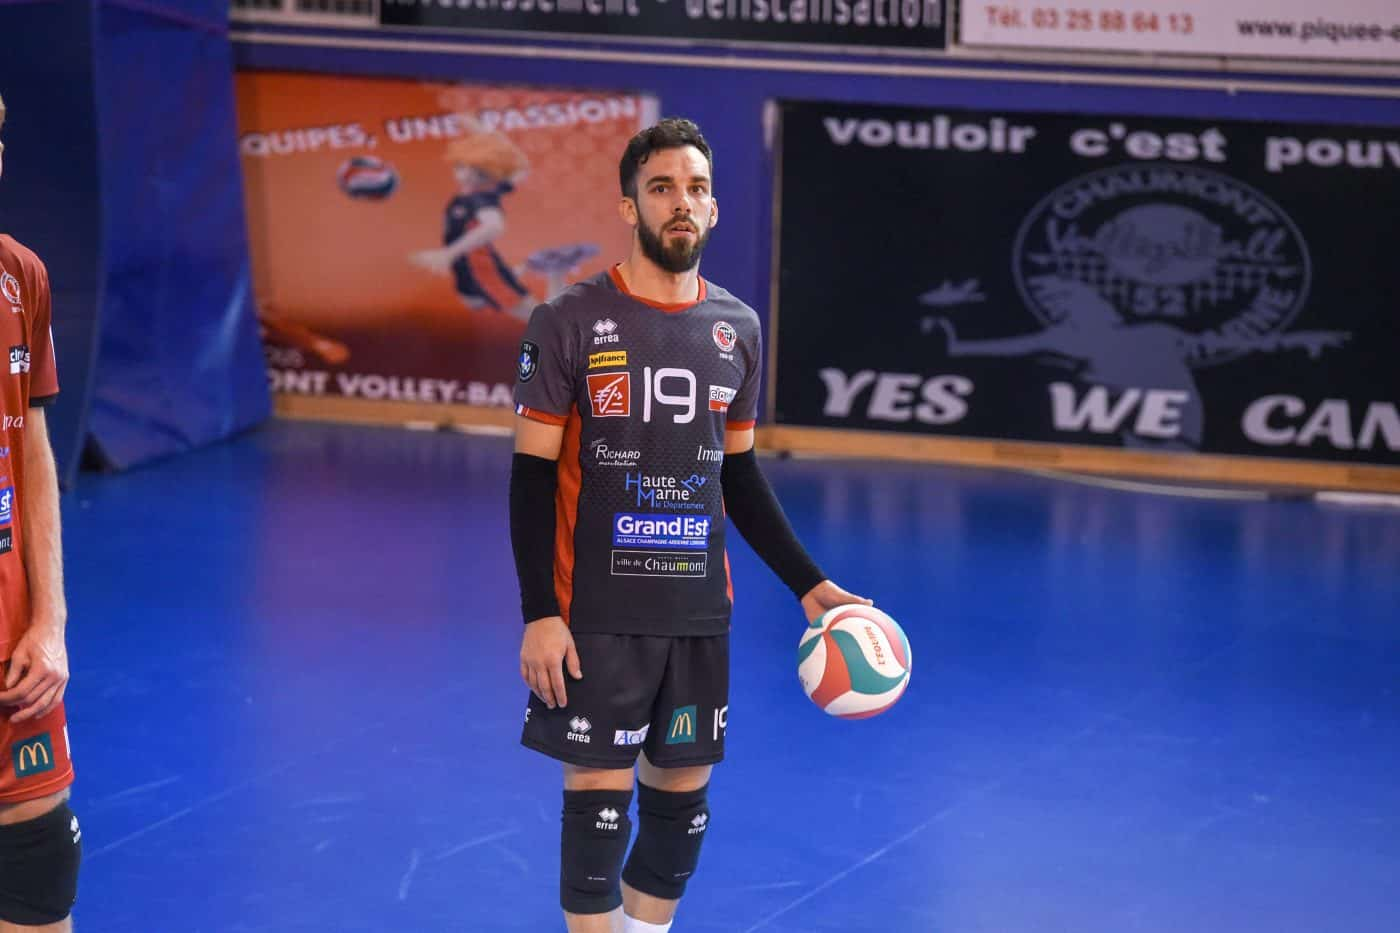 maillot-volley-LAM-2019-2020-chaumont-errea-1